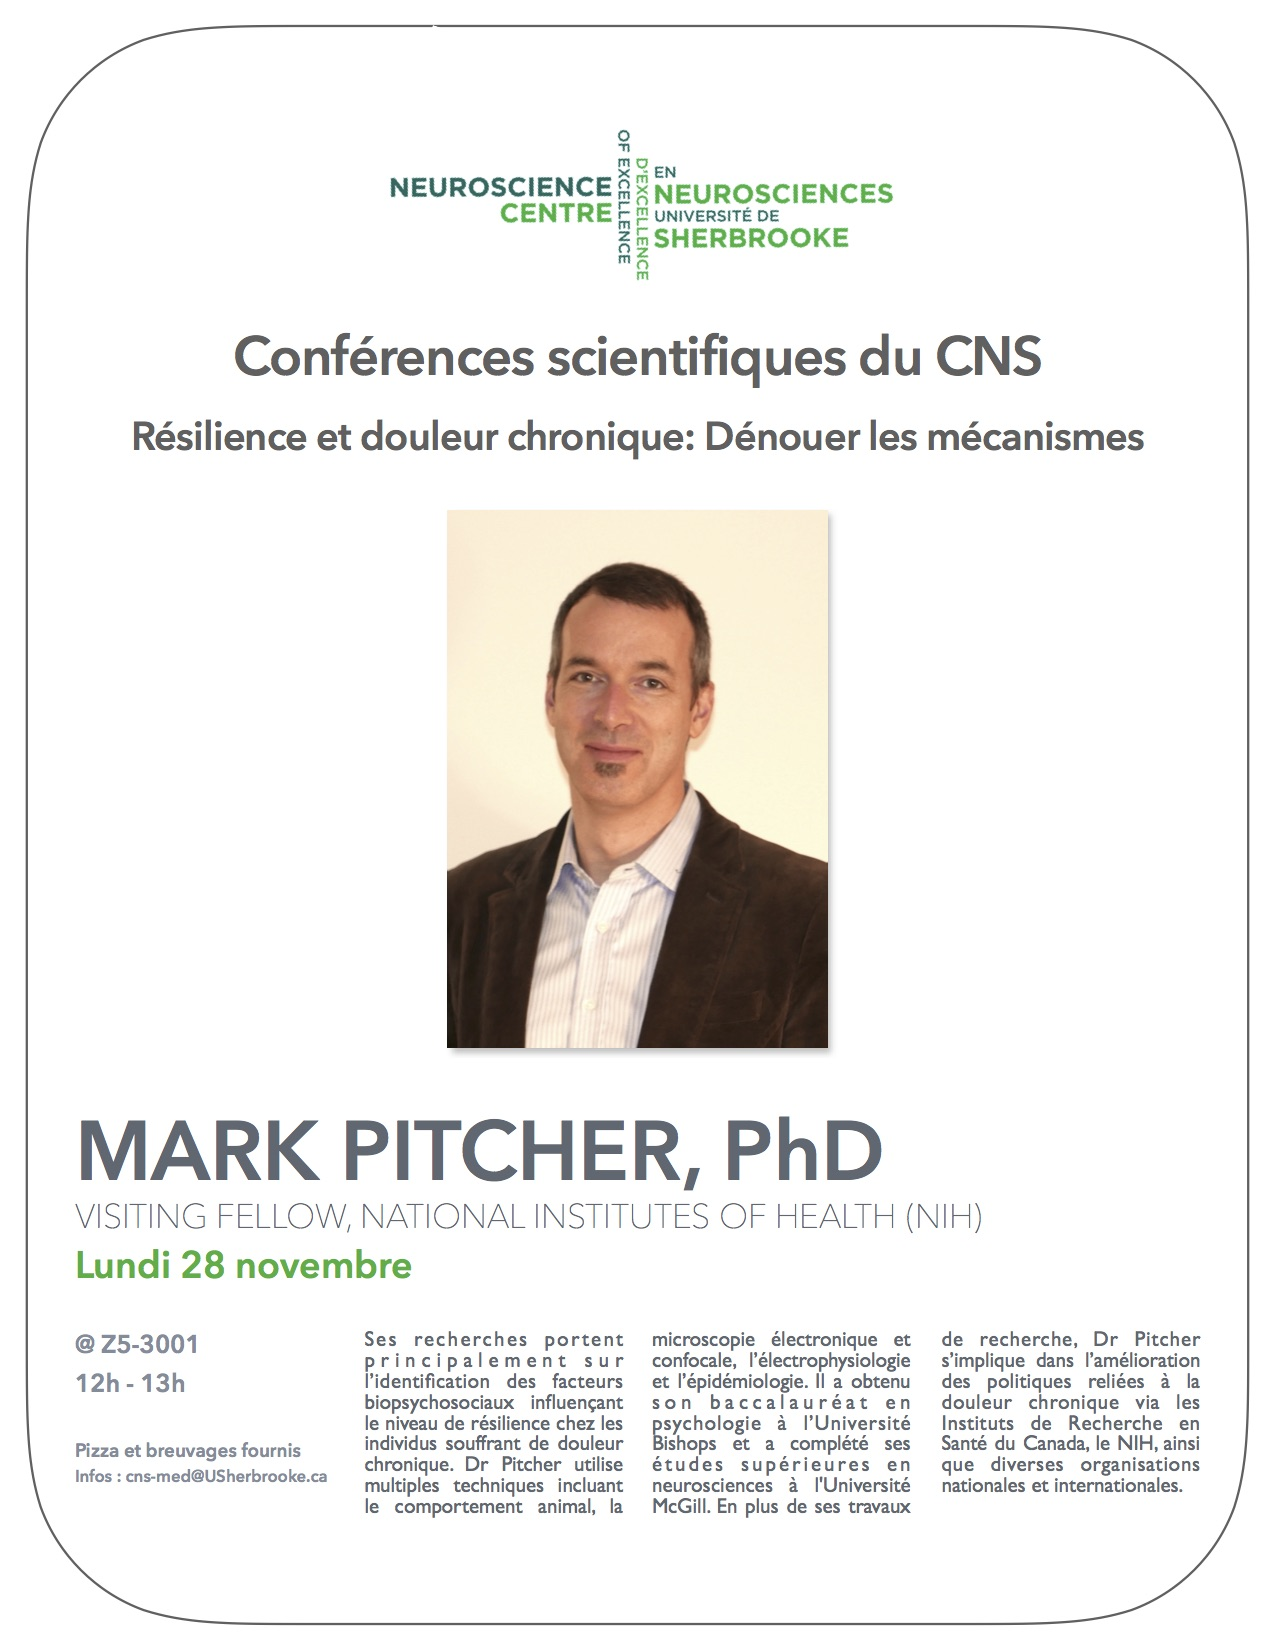 pitcher-mark-affiche